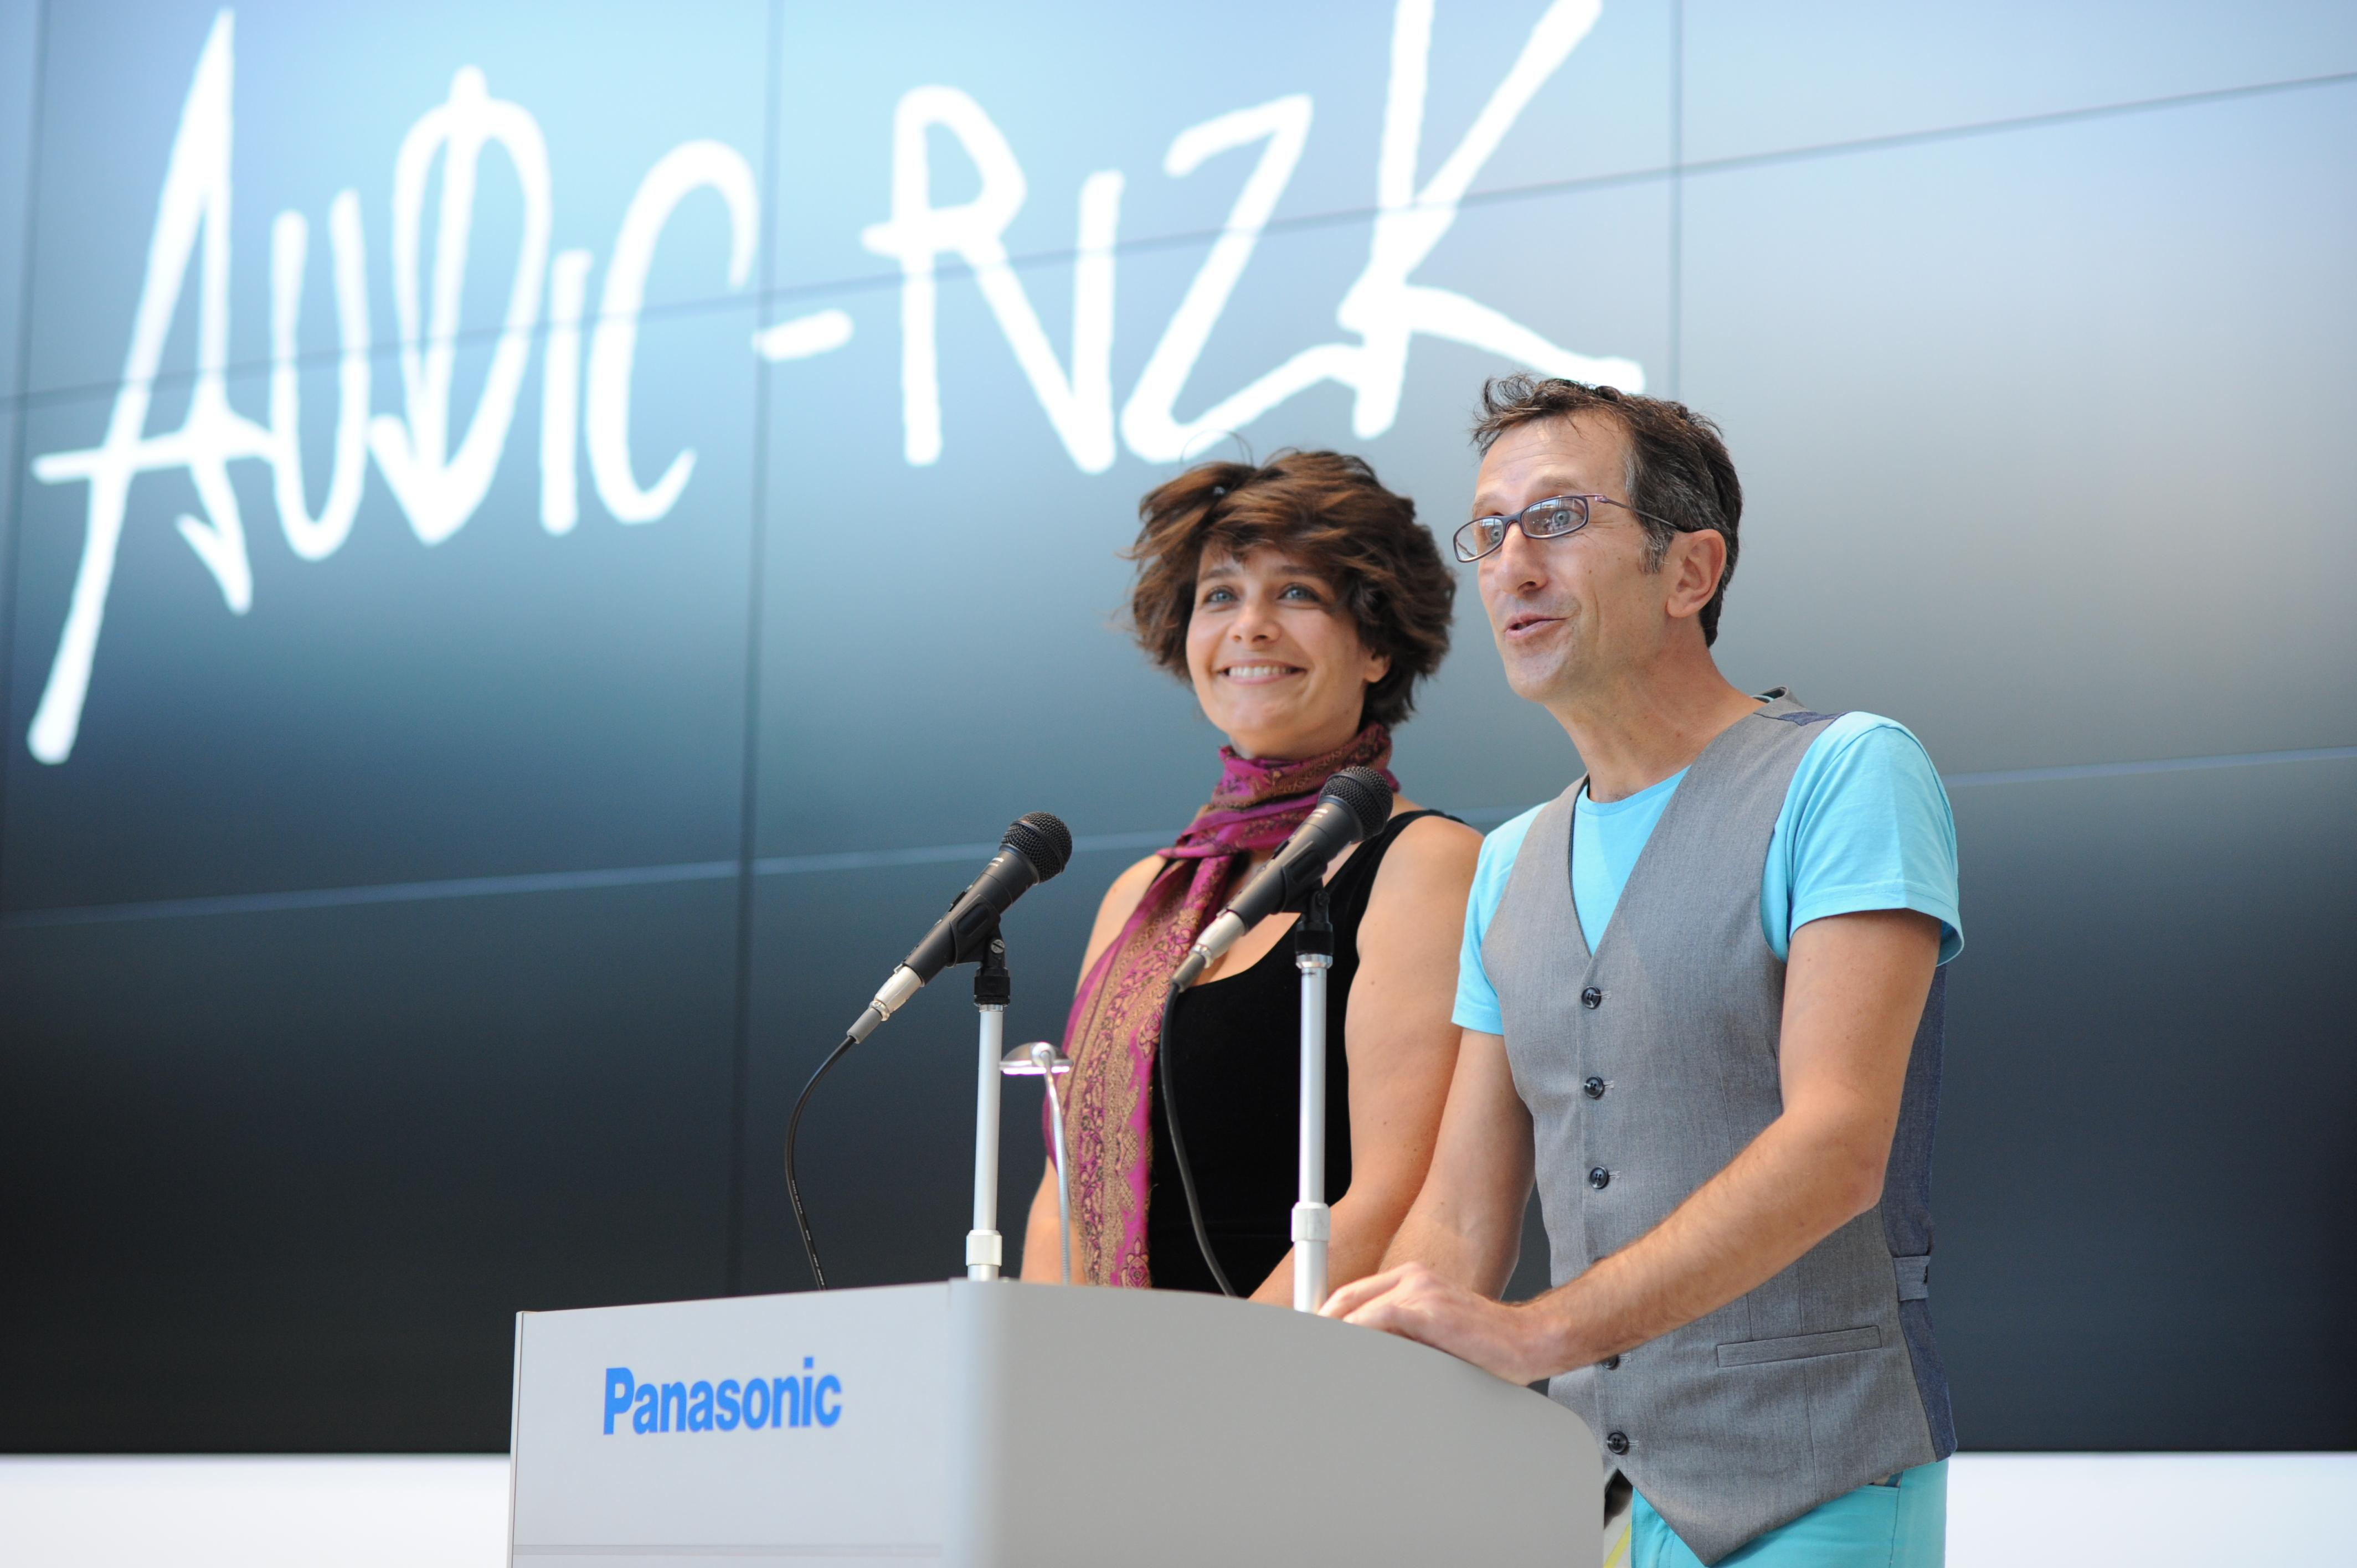 photo: the French artist duo Audic-Rizk